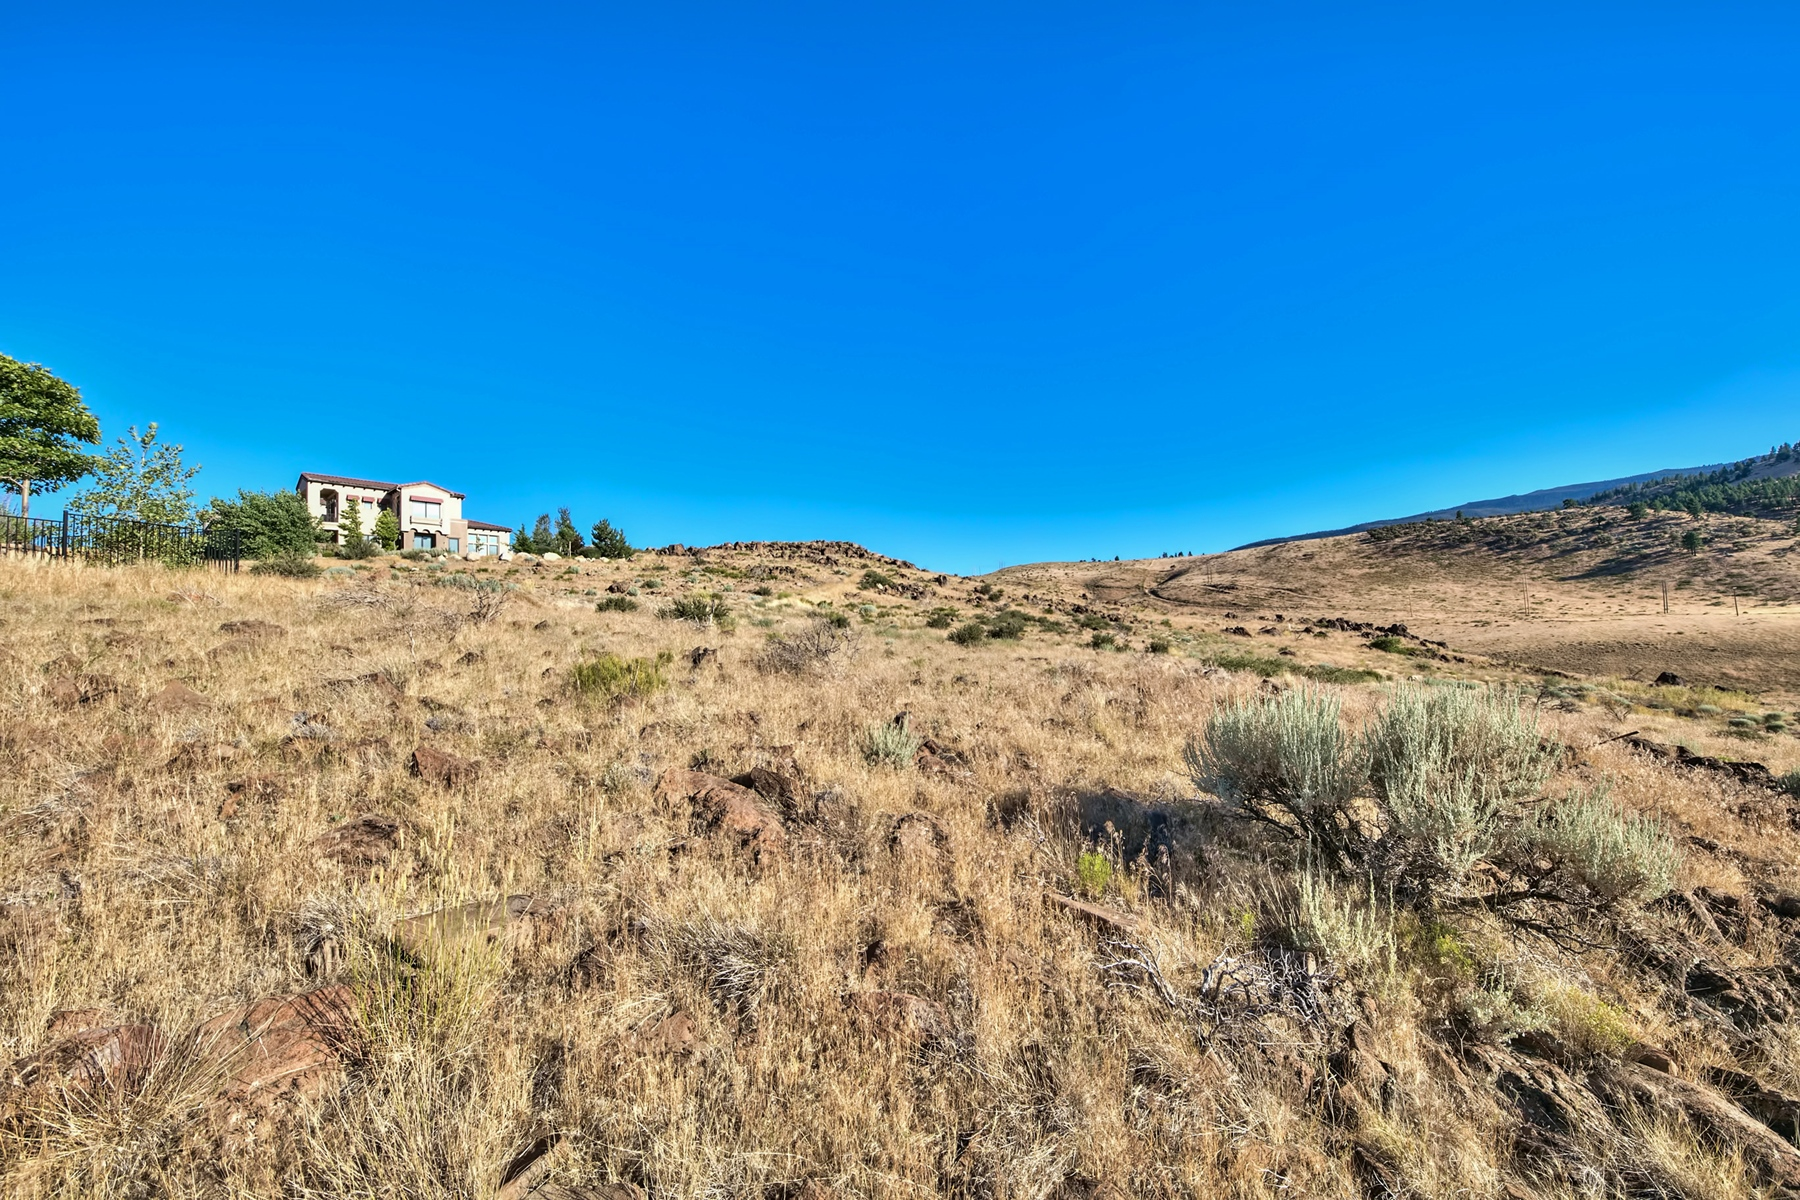 Additional photo for property listing at 4832 Sierra Pine Court, Reno, Nevada 4832 Sierra Pine Court Reno, Nevada 89519 United States